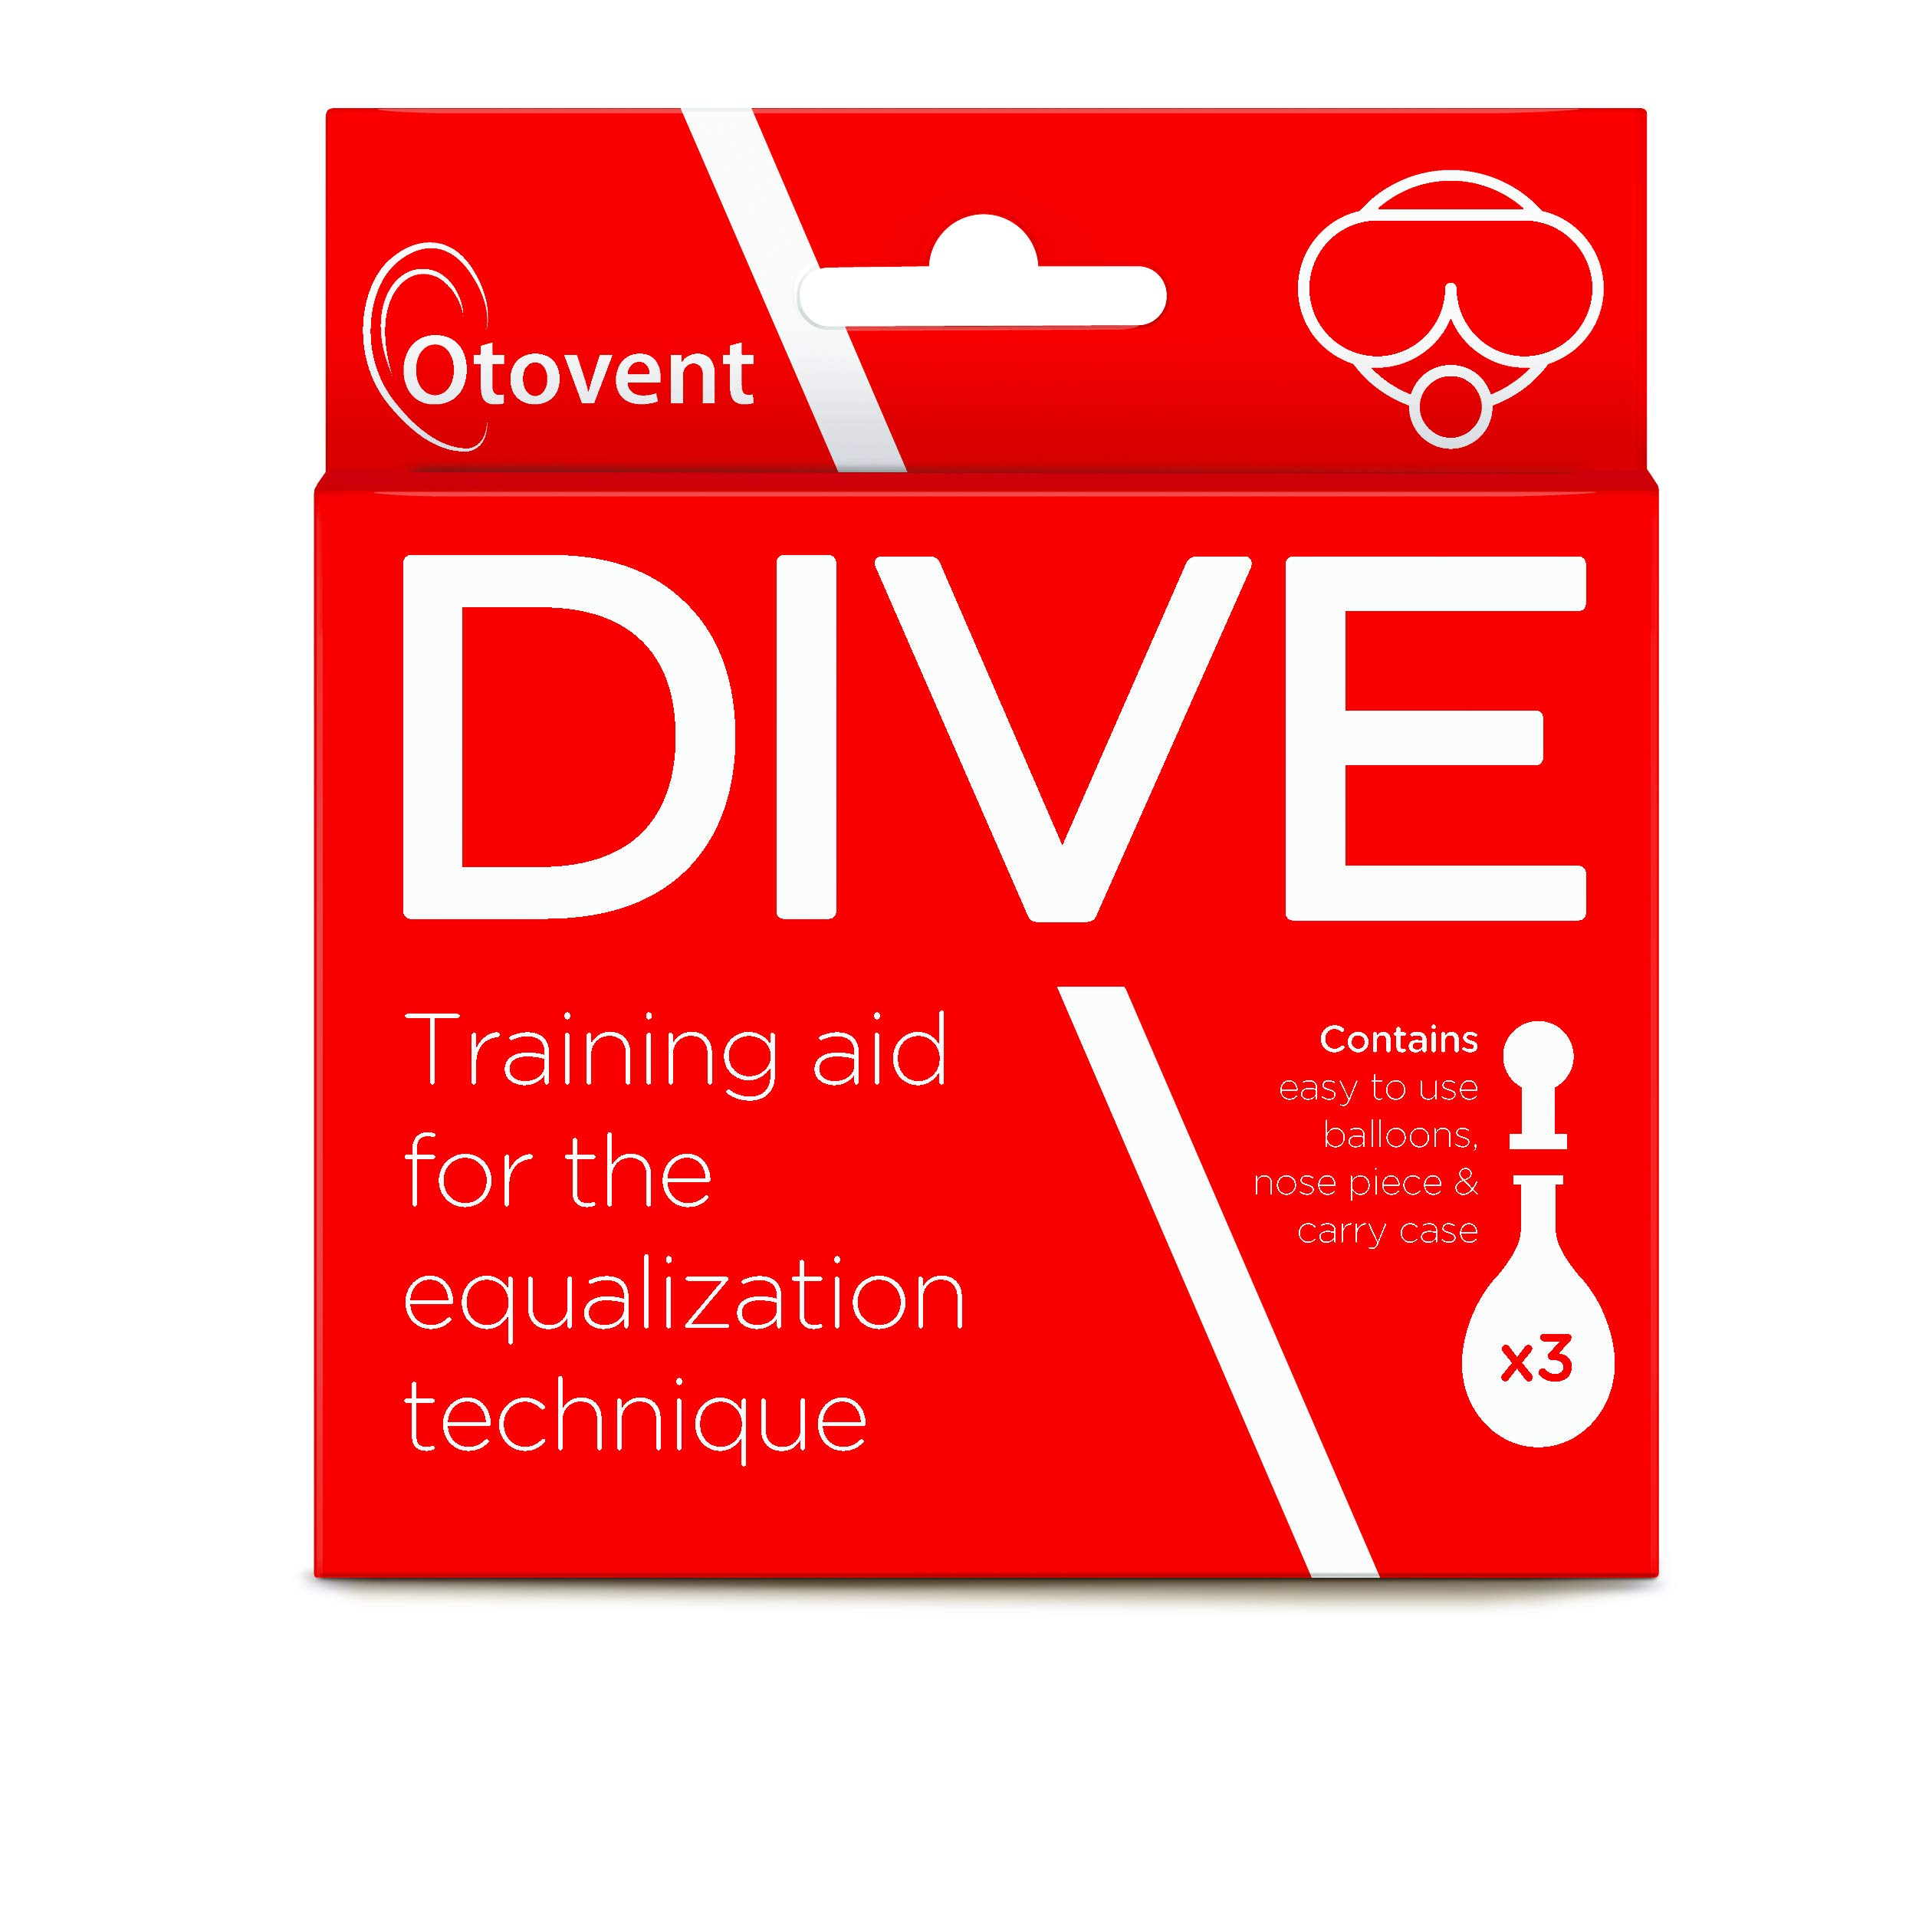 Otovent Dive Autoinflation Device, Red, 3 Count